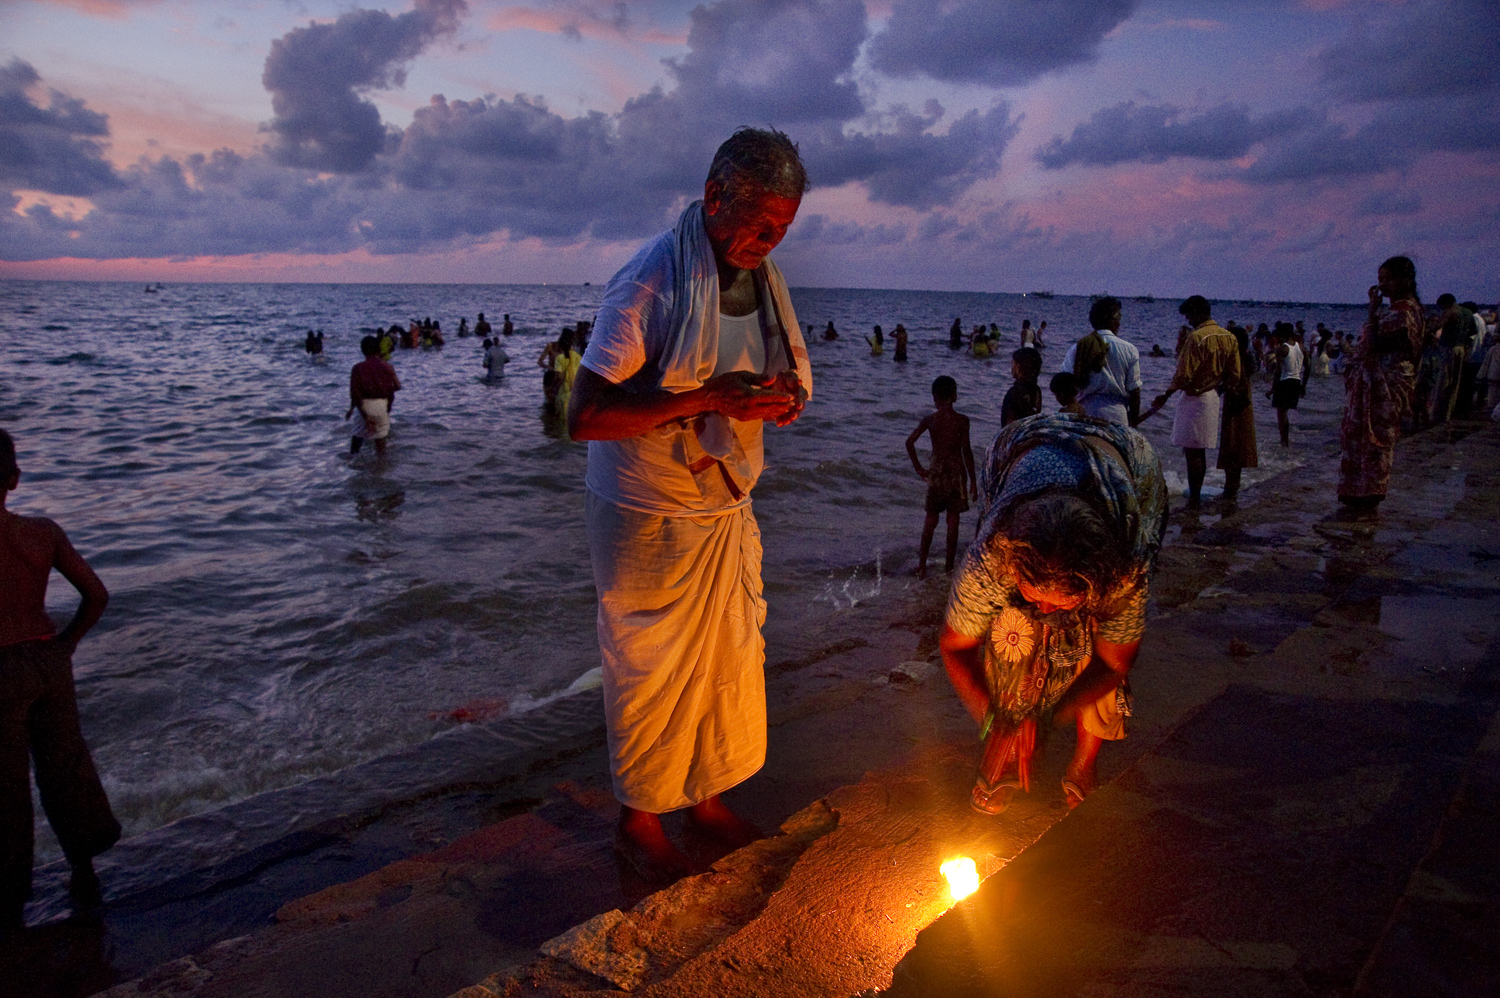 Hindu pilgrims making an offering outside Rameswaram's Ramanathaswamy temple, just before sunrise. Most Hindus believe that Hanuman and his army of monkeys built a bridge from this point in India to Sri Lanka to retrieve the kidnapped bride of Rama.